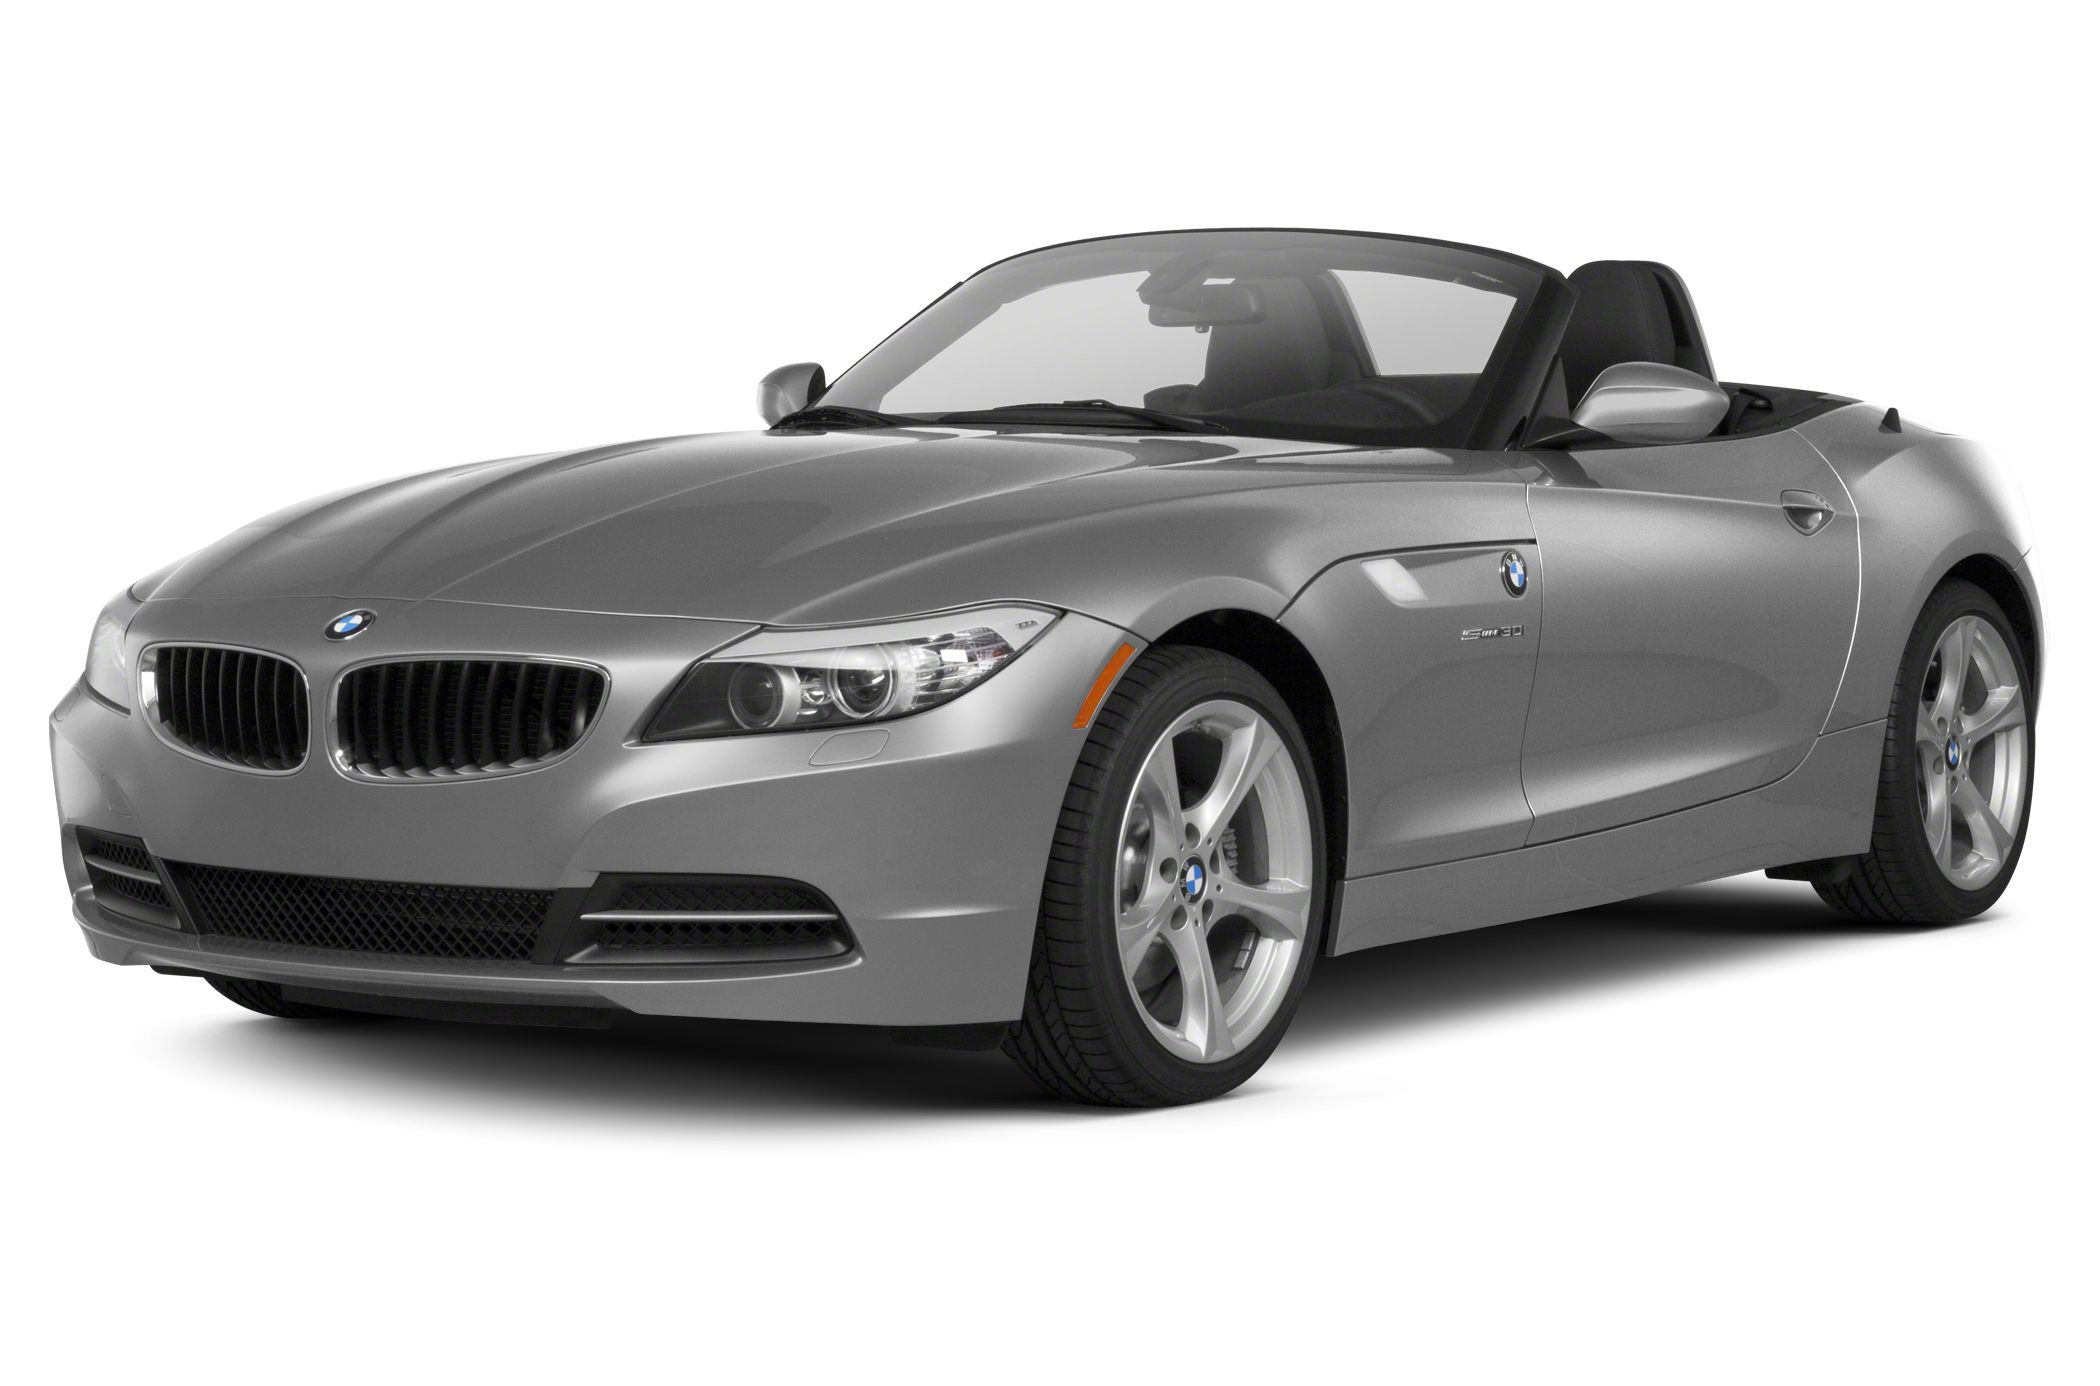 2013 BMW Z4 SDrive28i Convertible for sale in Mechanicsburg for $38,950 with 19,436 miles.